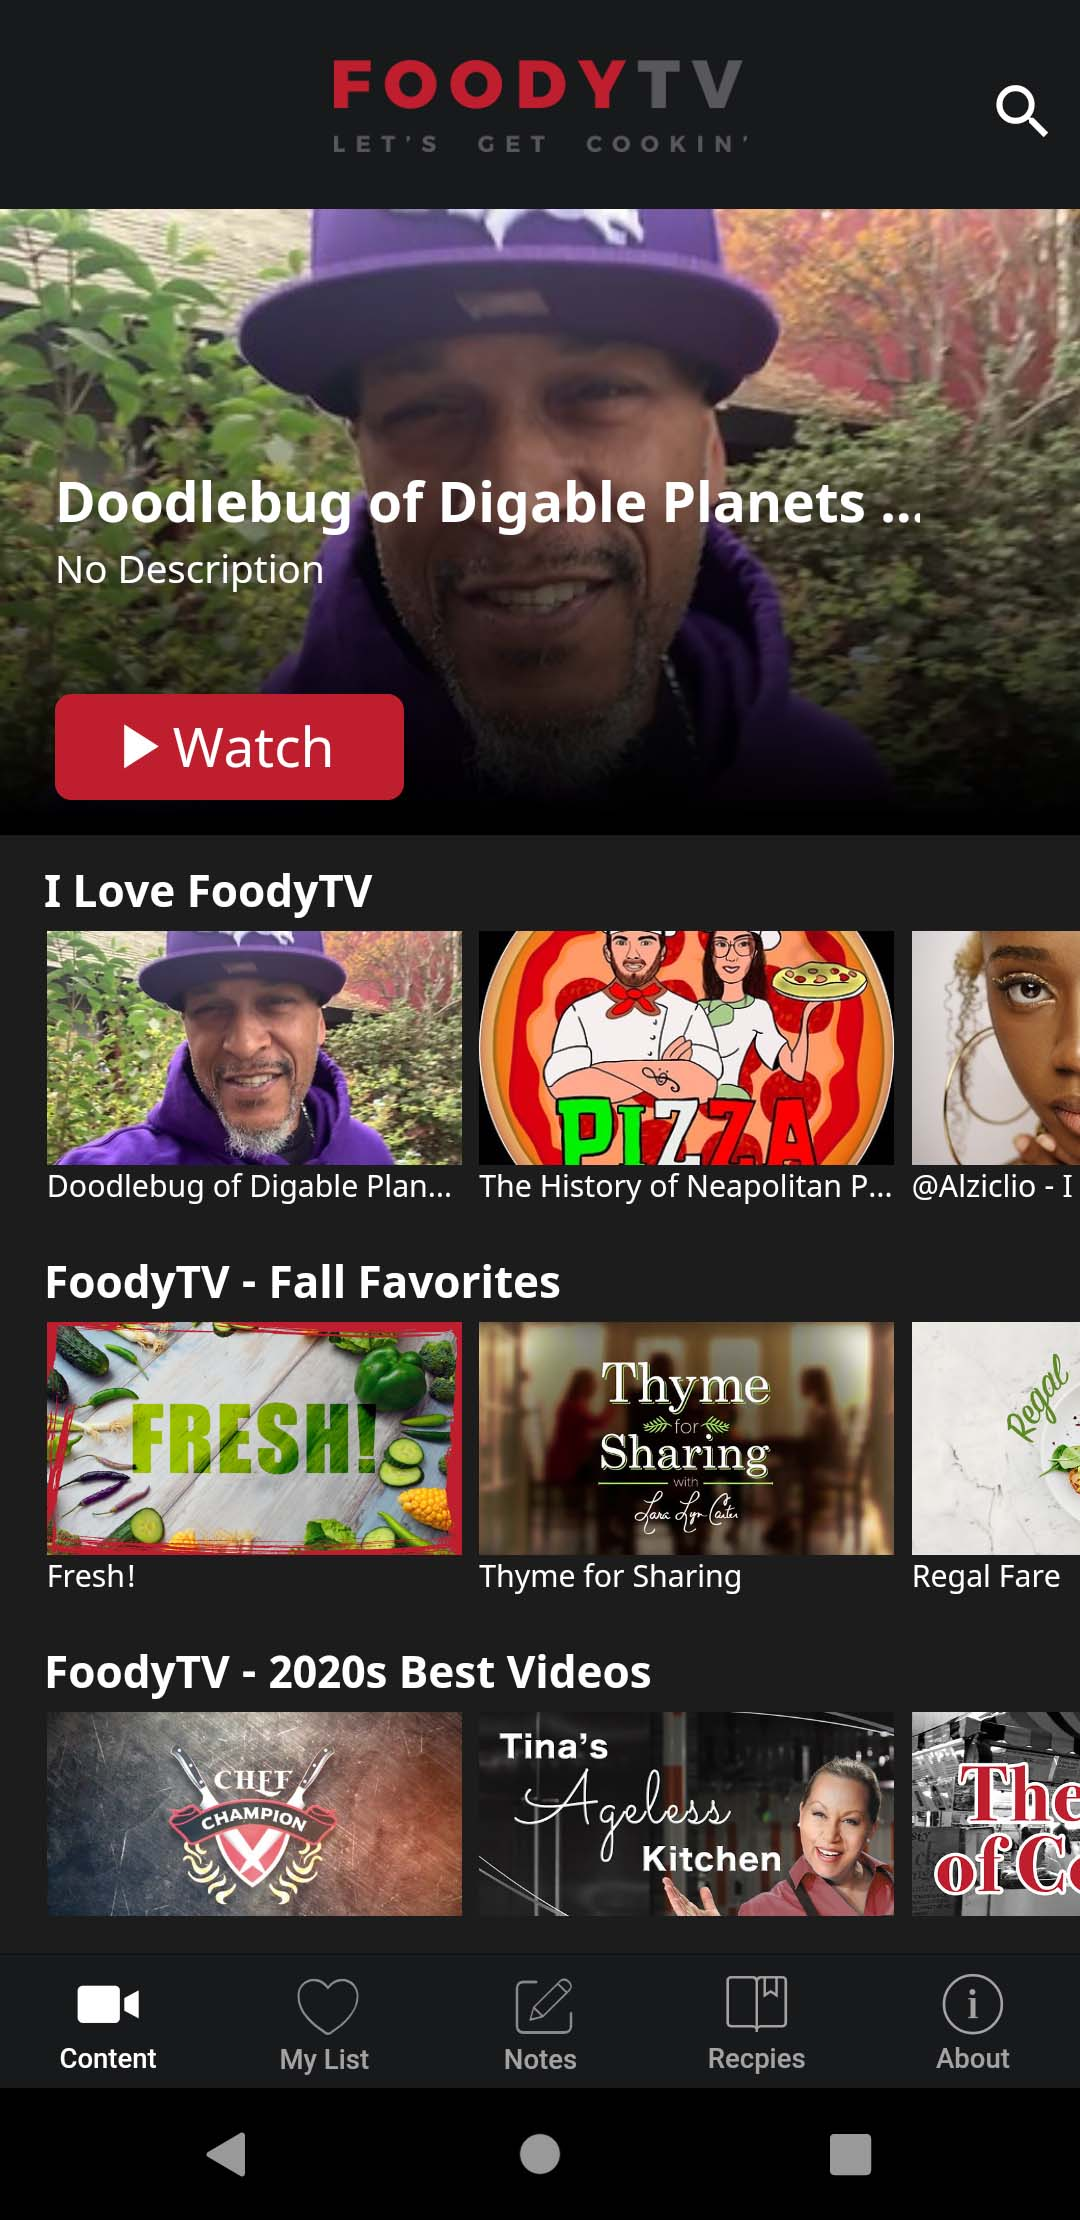 FOODYTV Screenshot 001